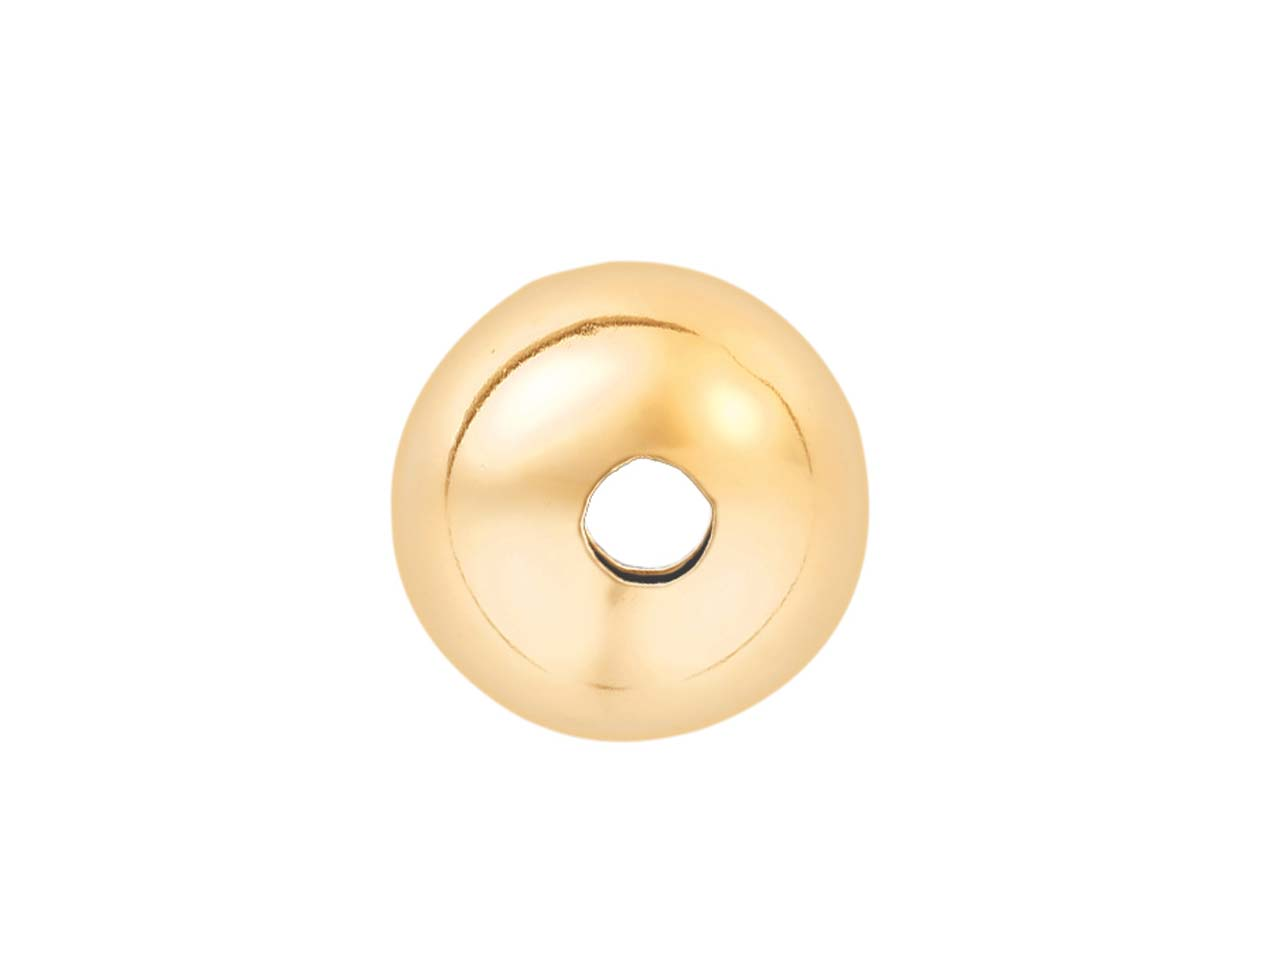 18ct Yellow Gold Plain Round 2 Hole Beads 4mm Extra Heavy